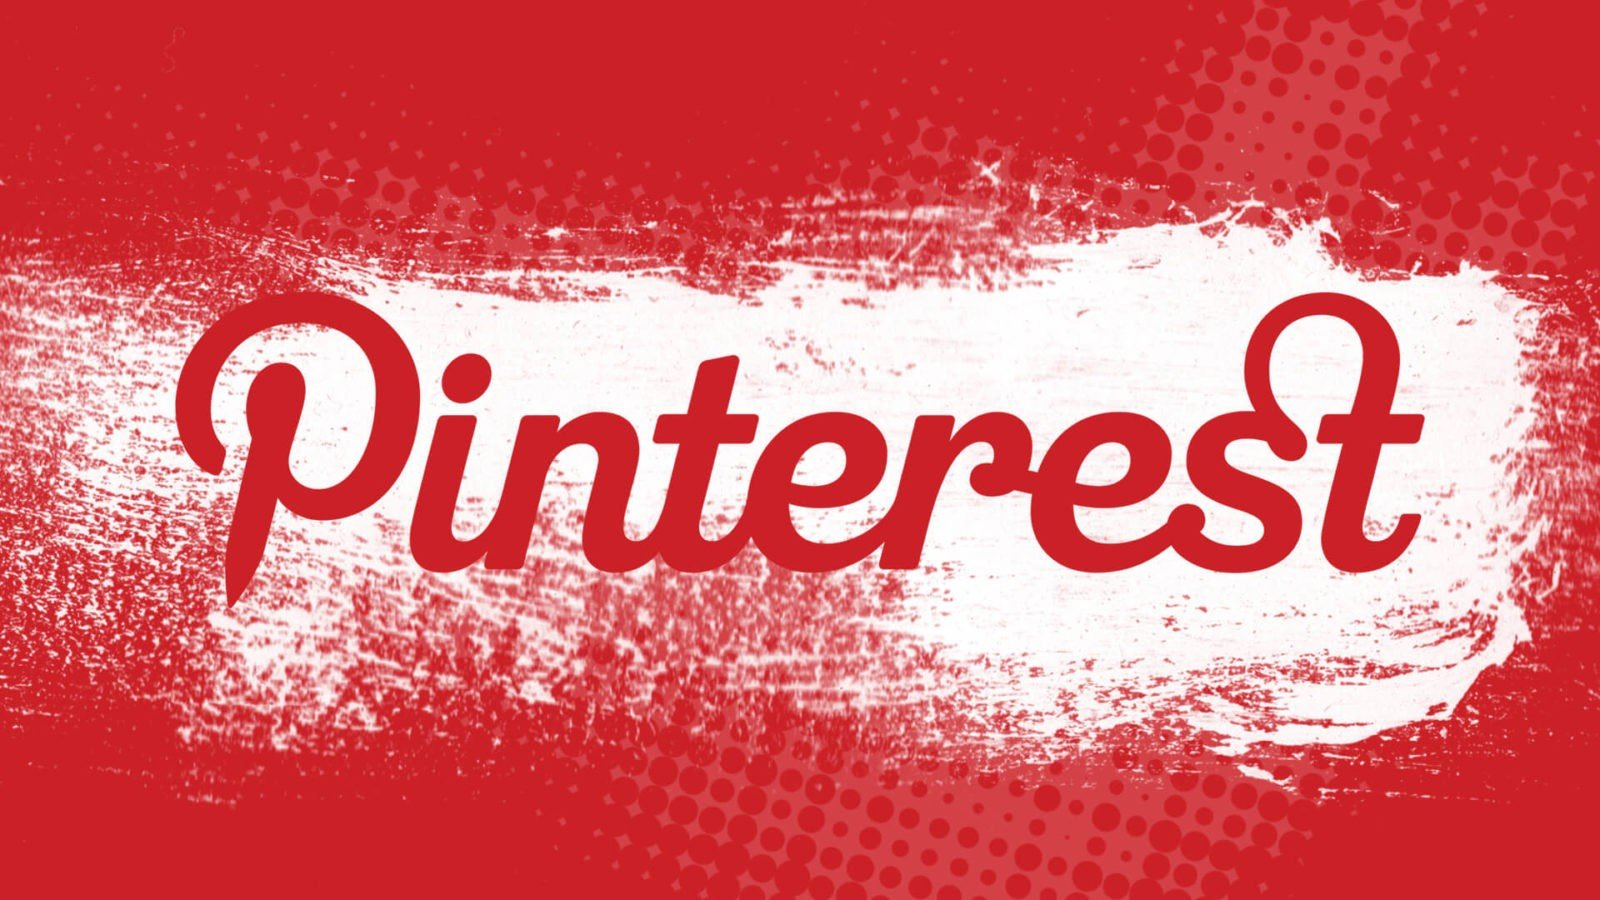 Pinterest's Lens update adds a Snapchat-style look and a fashion sense